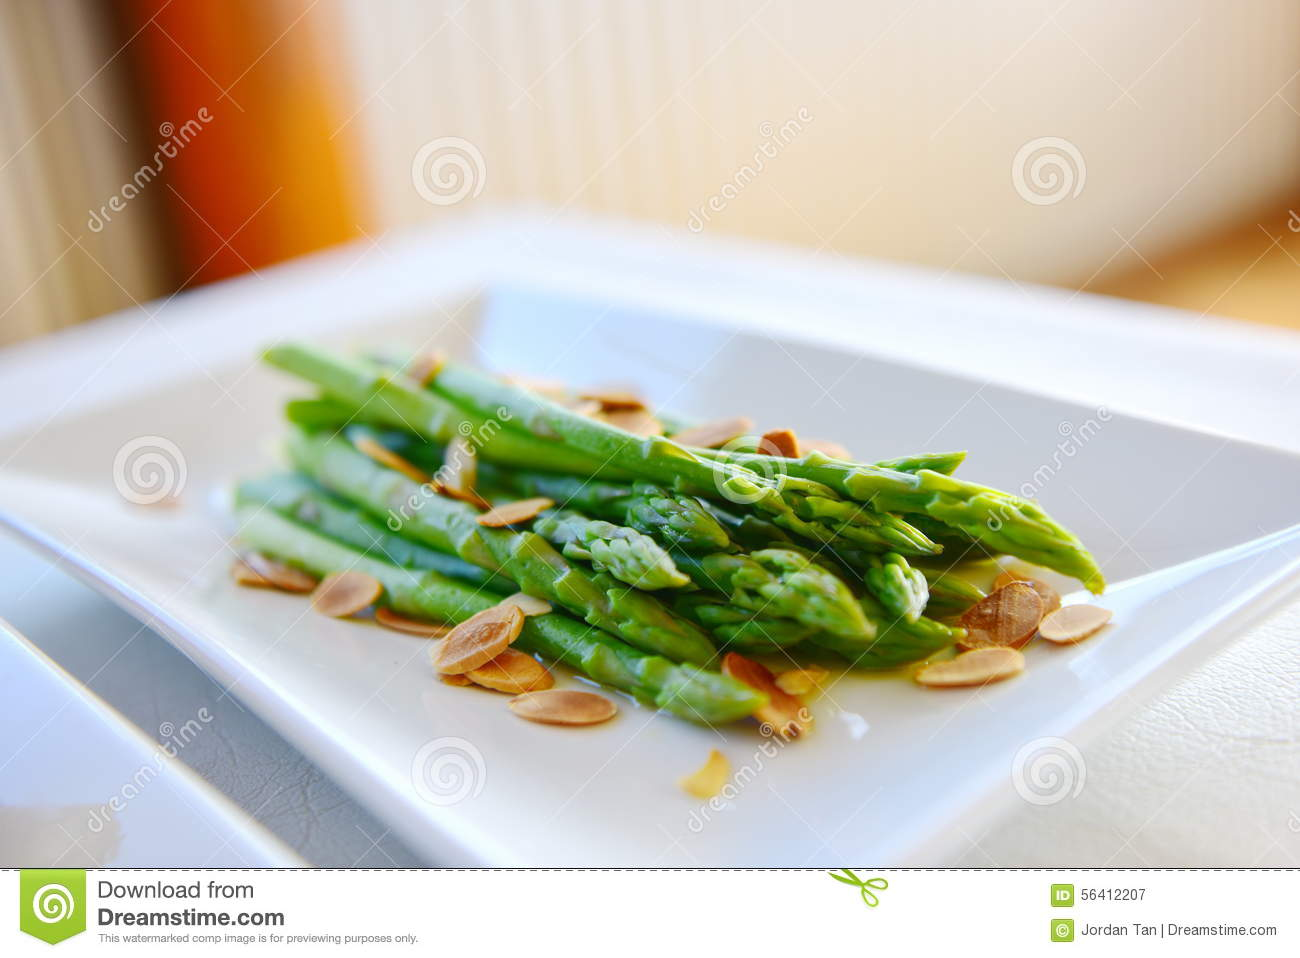 Asparagus Served With Almond Stock Photo - Image: 56412207